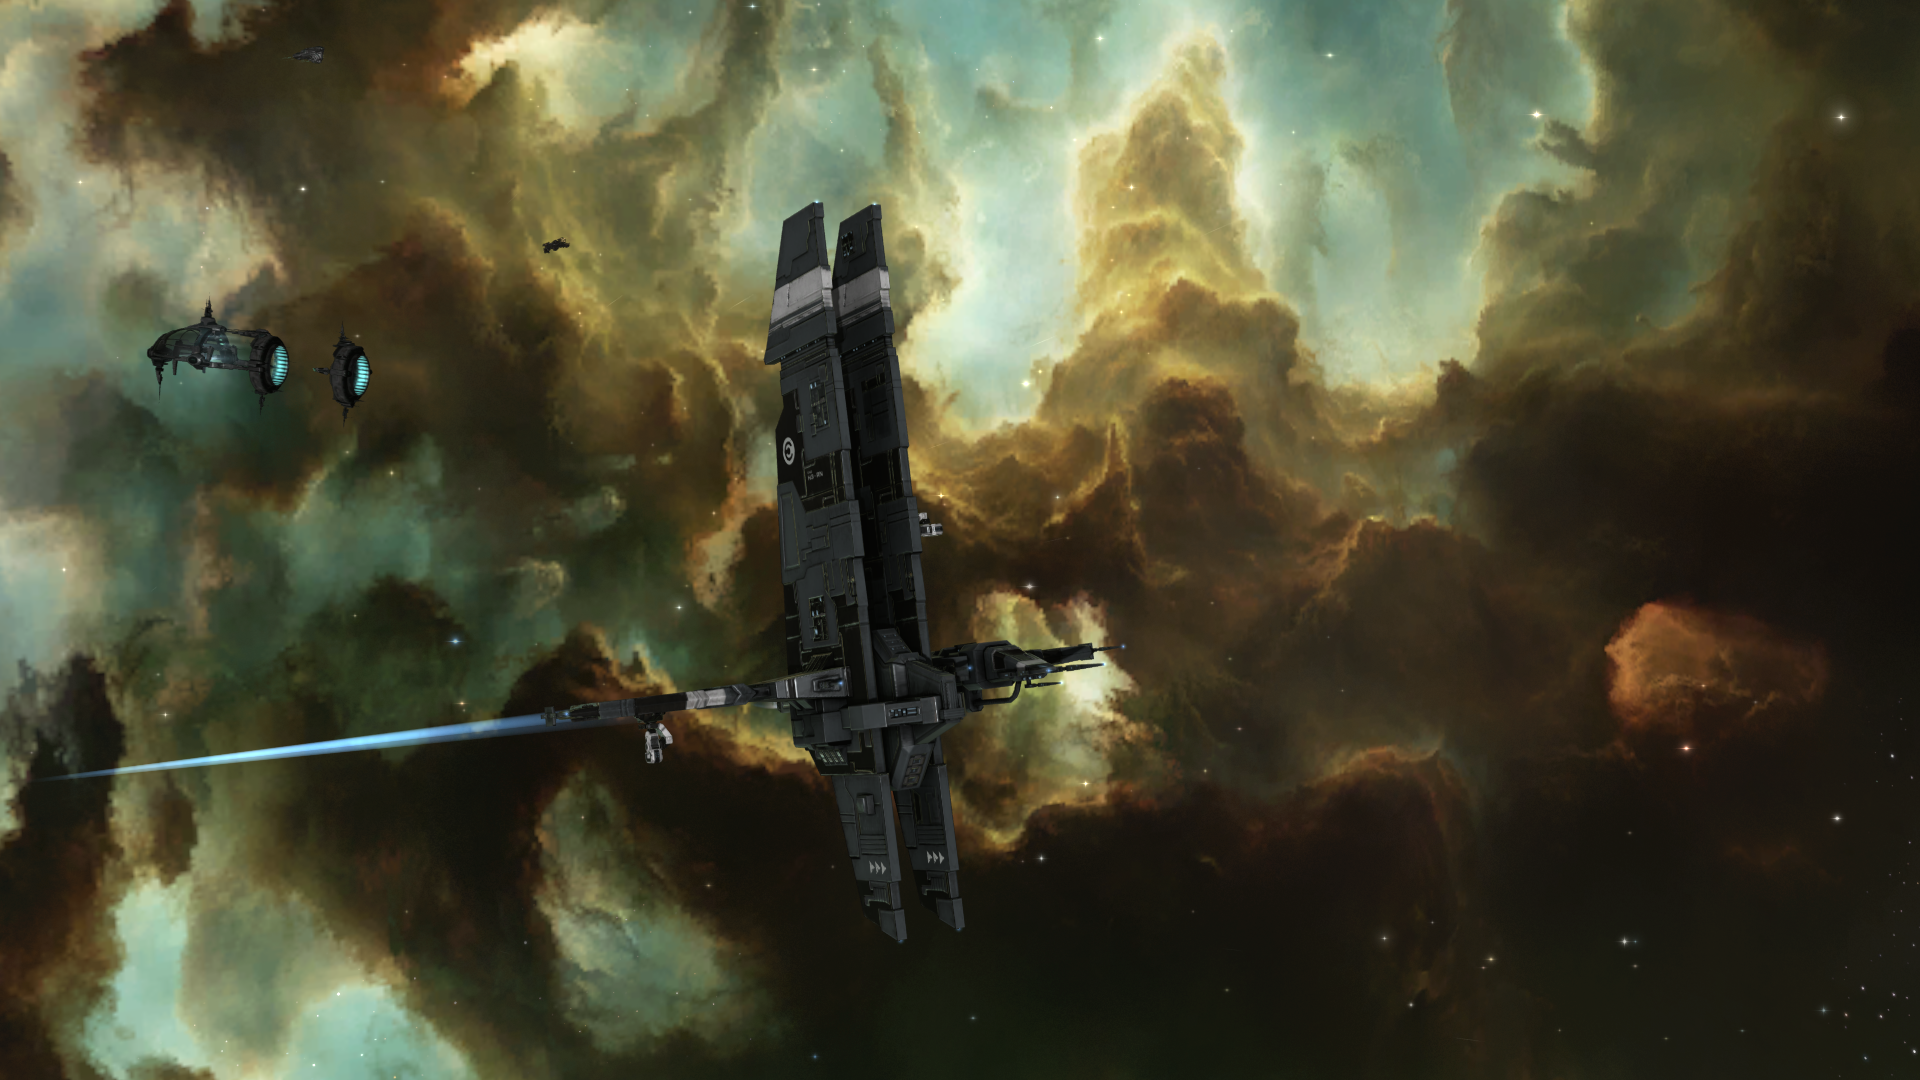 The Stargazer stargazes in EVE Online